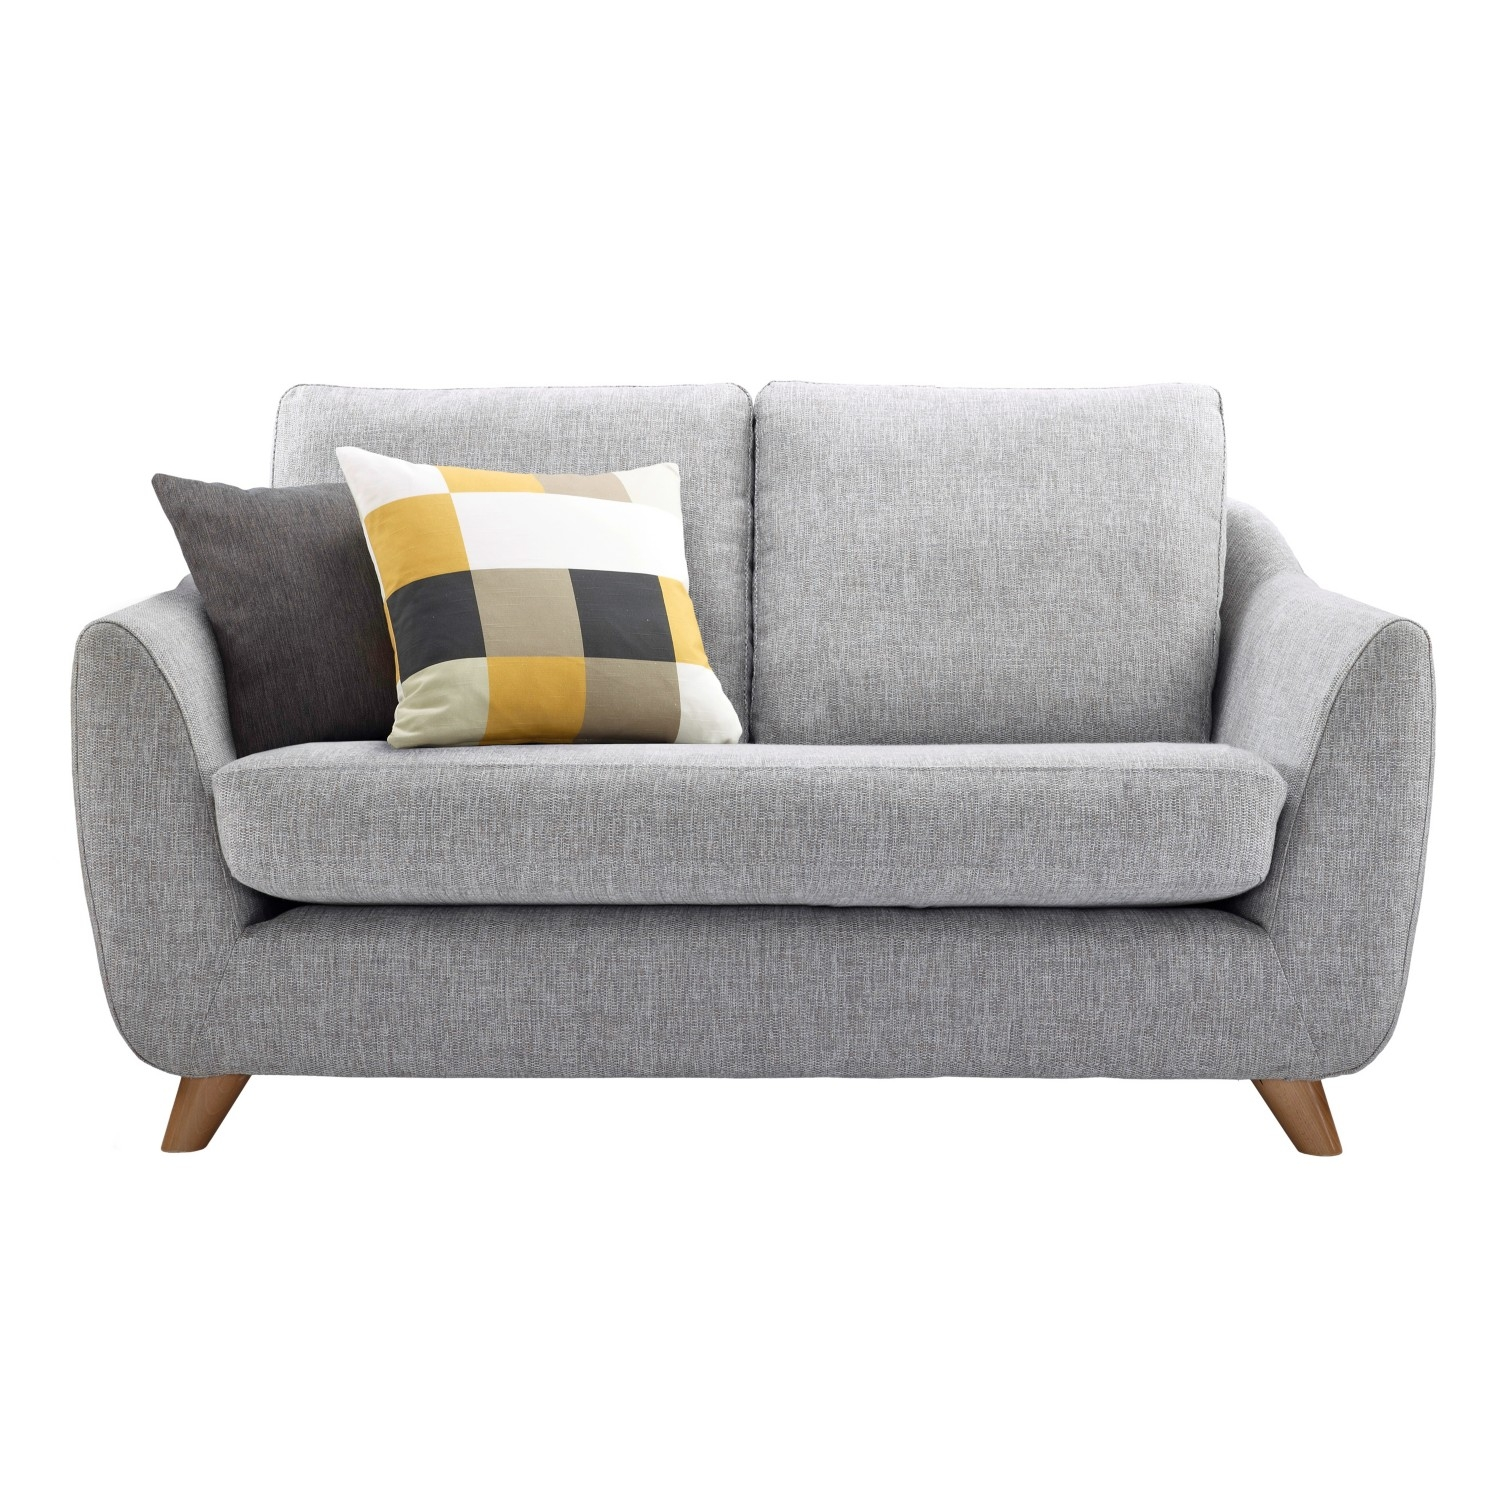 Loveseats For Small Spaces Cheap Small Sofa Decoration Pertaining To Cool Sofa Beds (Image 10 of 15)